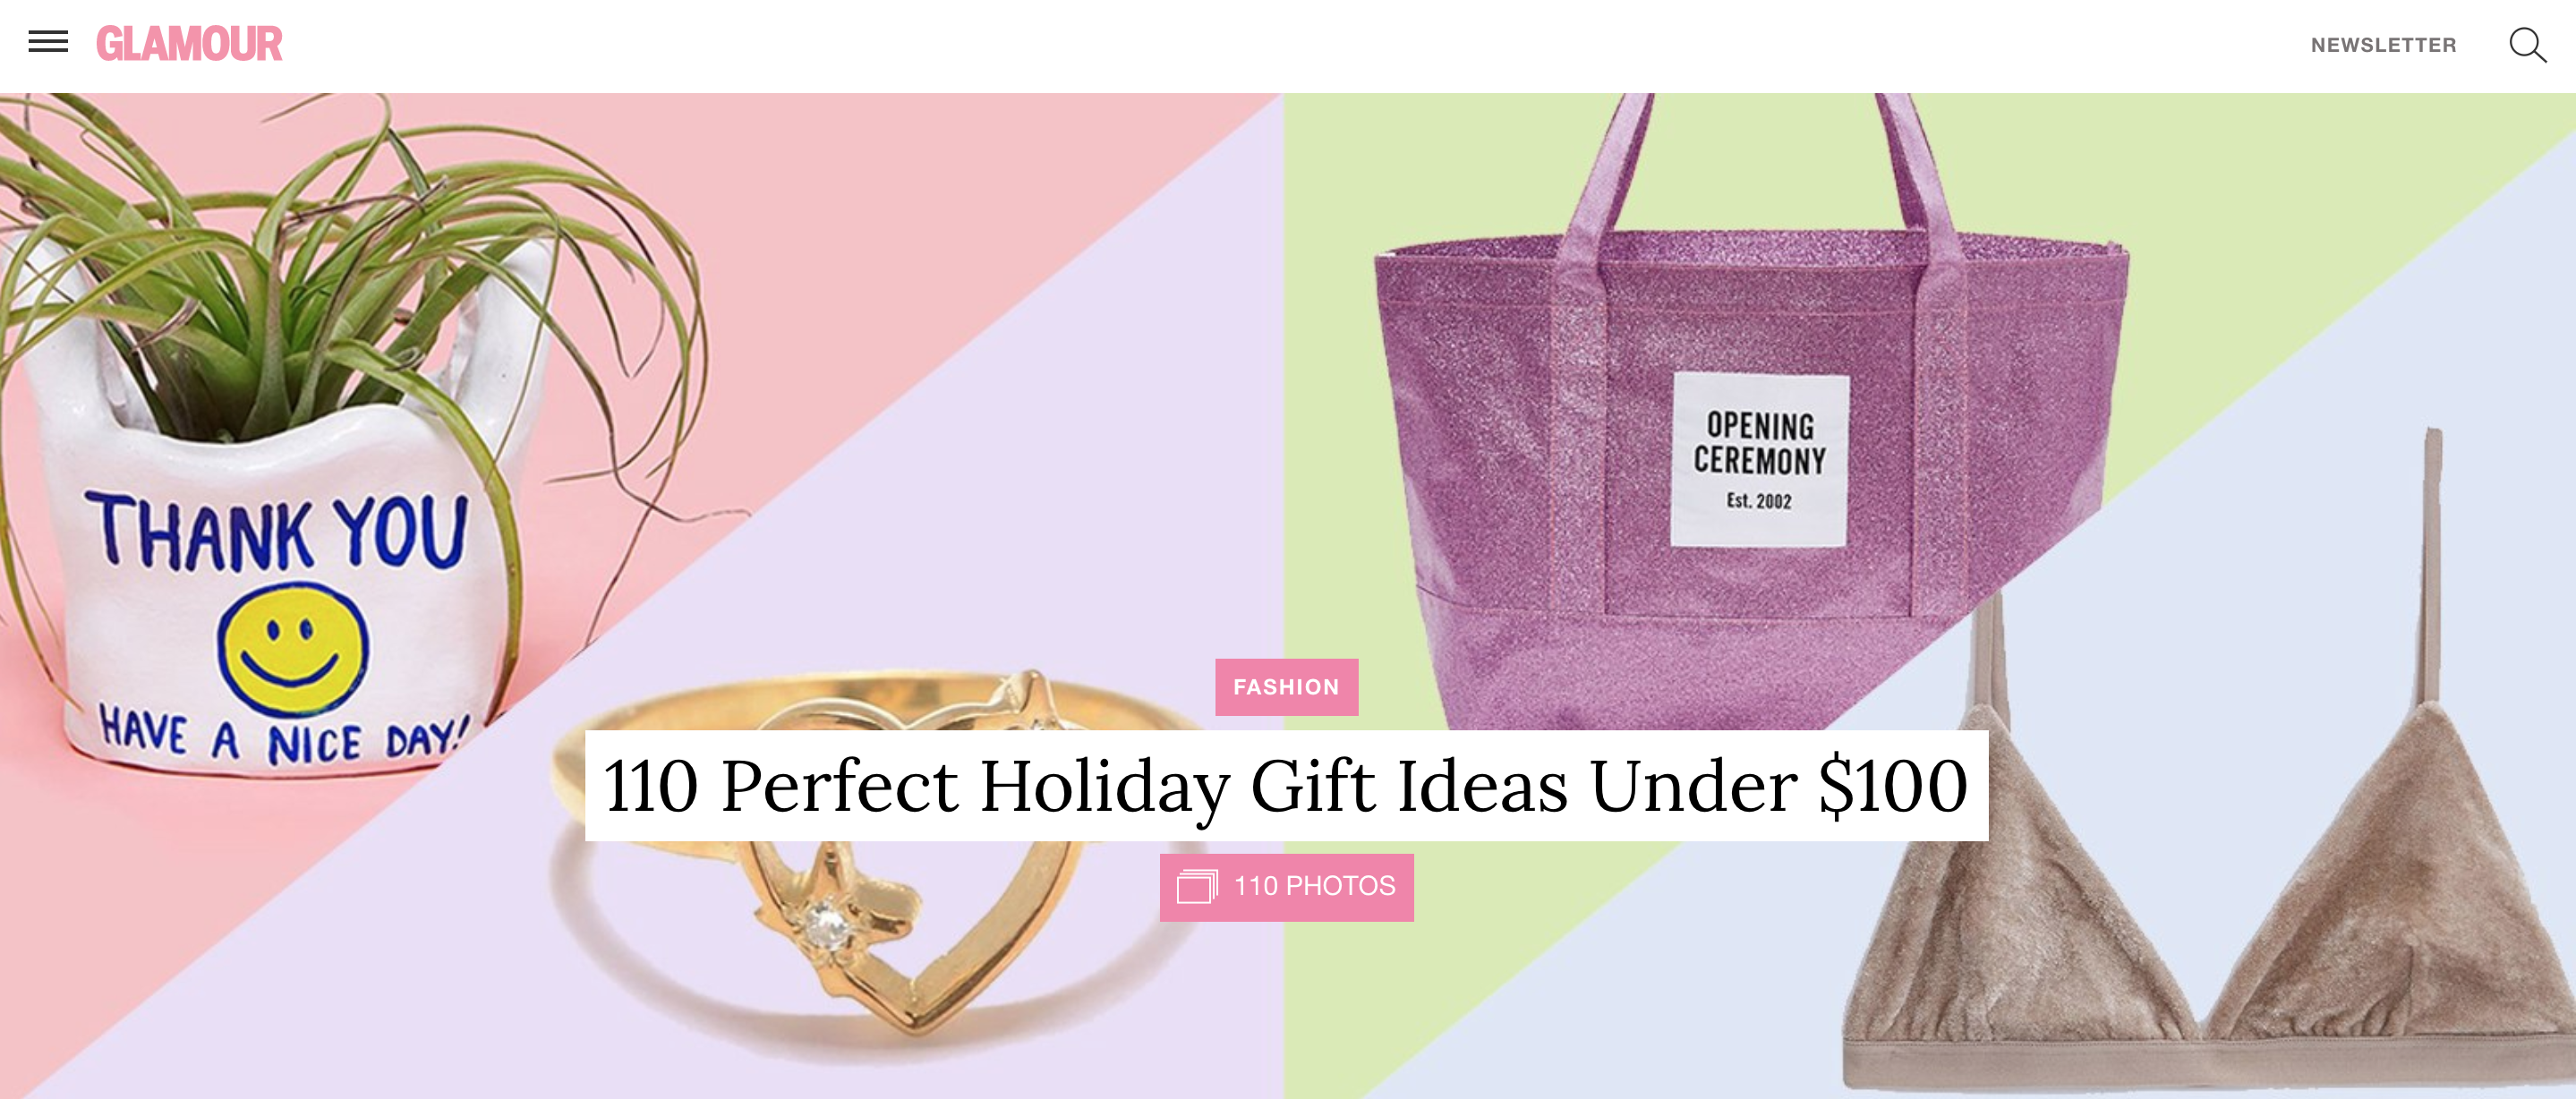 glamour gift guide